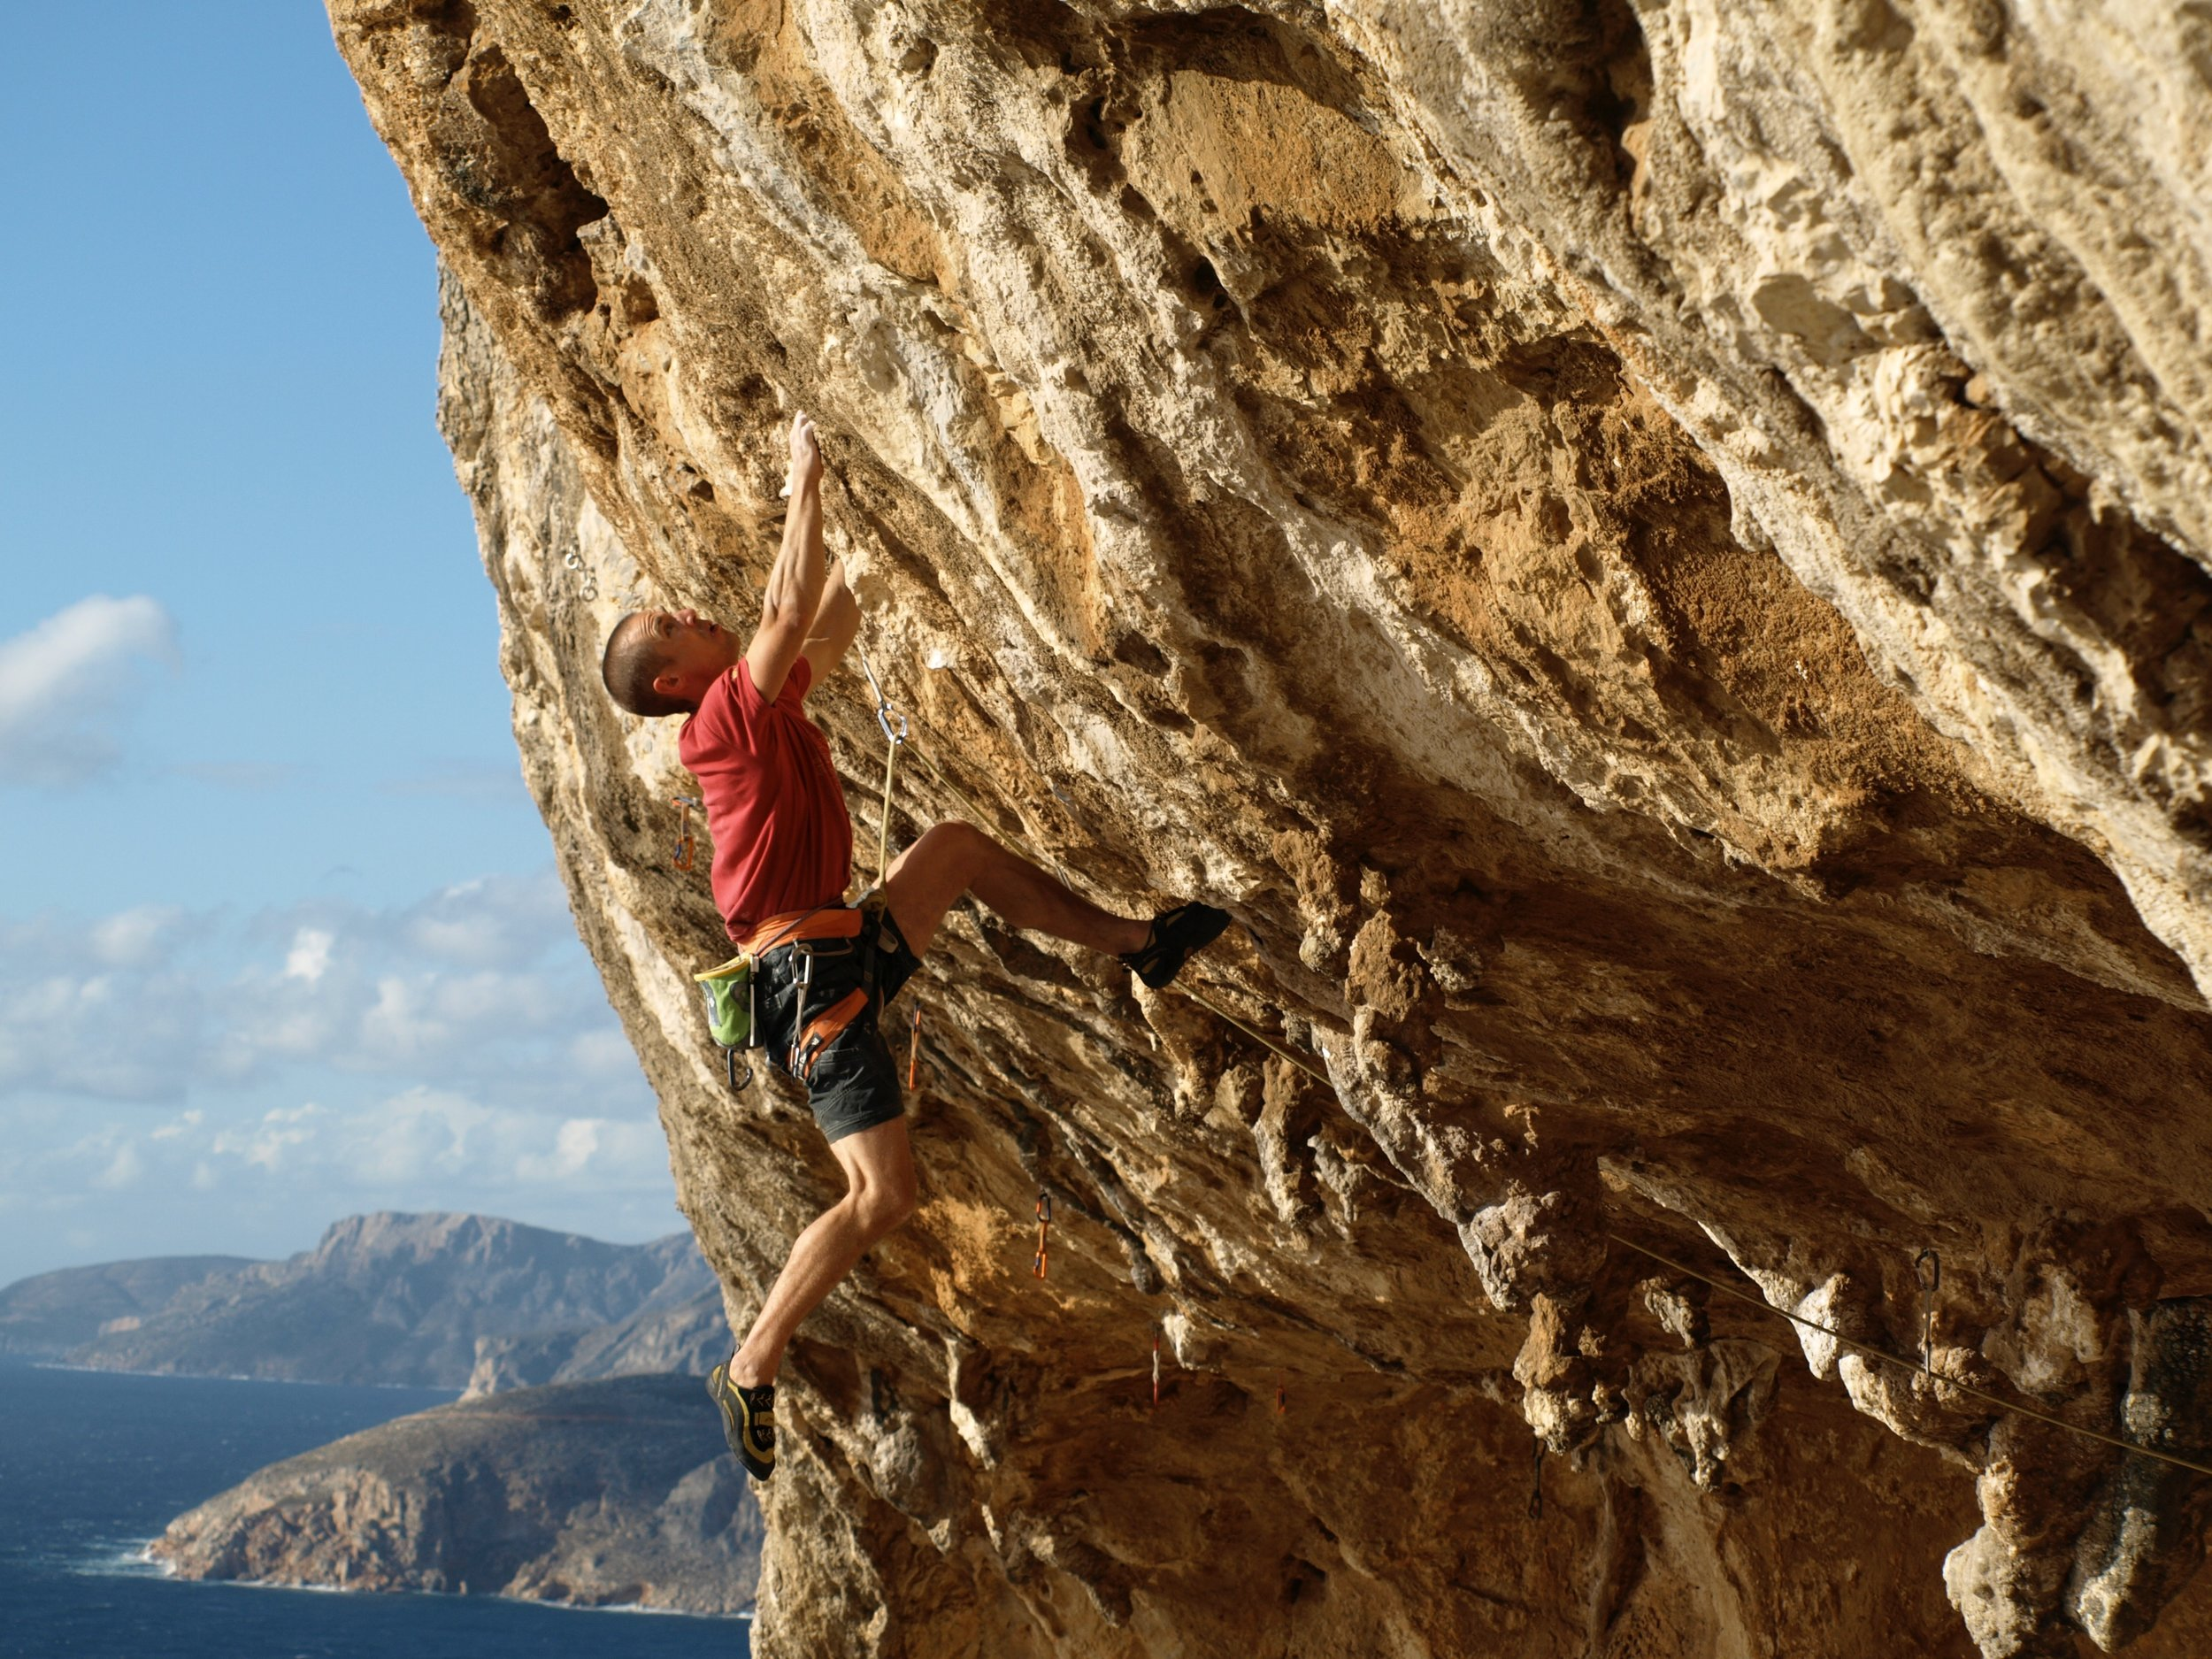 Valley of the Dolls 8a+/b, Iliad, Kalymnos.  Photo: Nathan Rogers